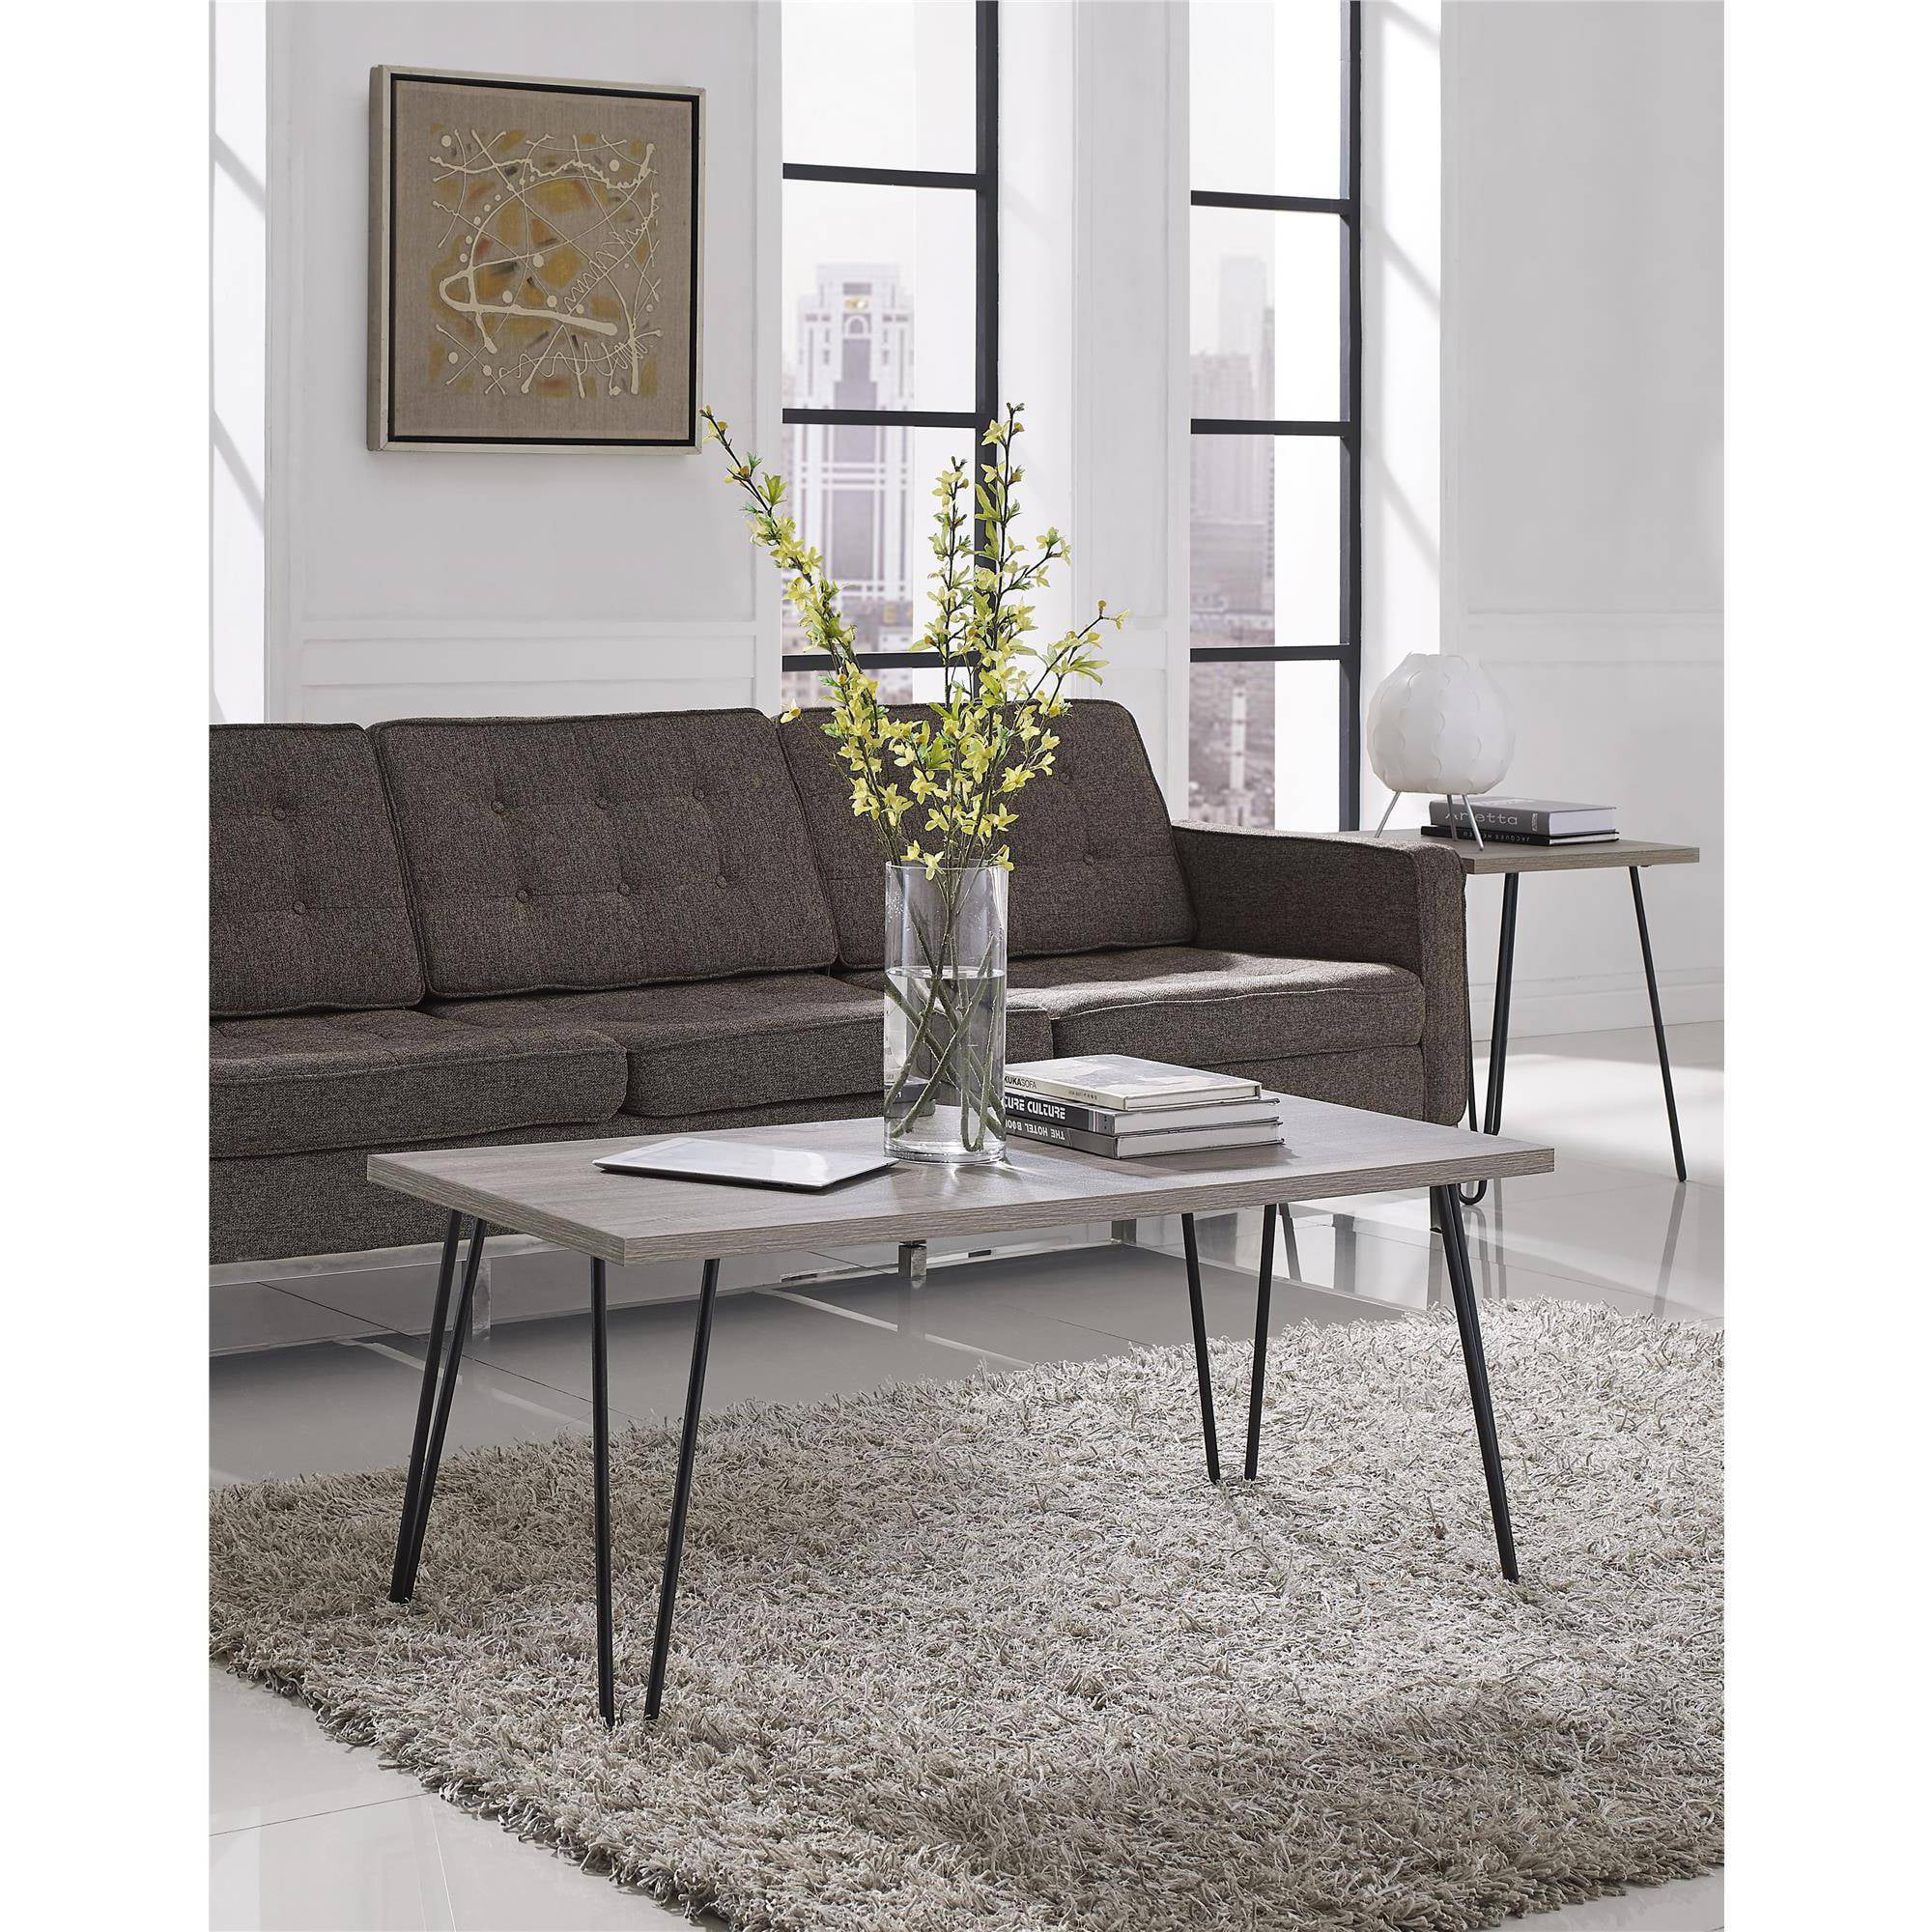 Ameriwood home owen retro coffee table distressed gray oak ameriwood home owen retro coffee table distressed gray oakgunmetal gray walmart geotapseo Choice Image